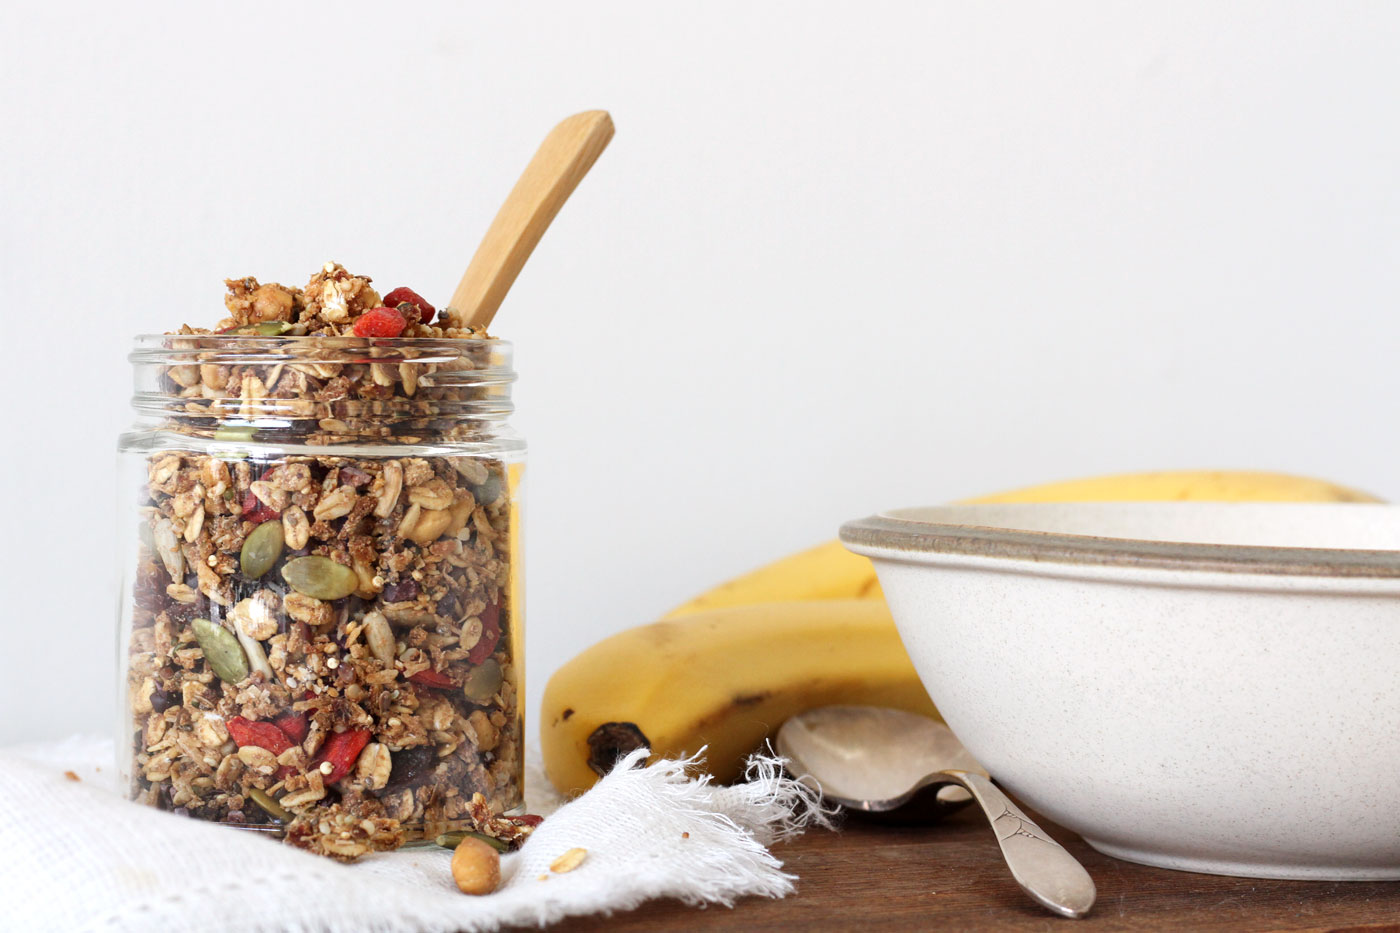 This is an easy Vegan oil free granola recipe